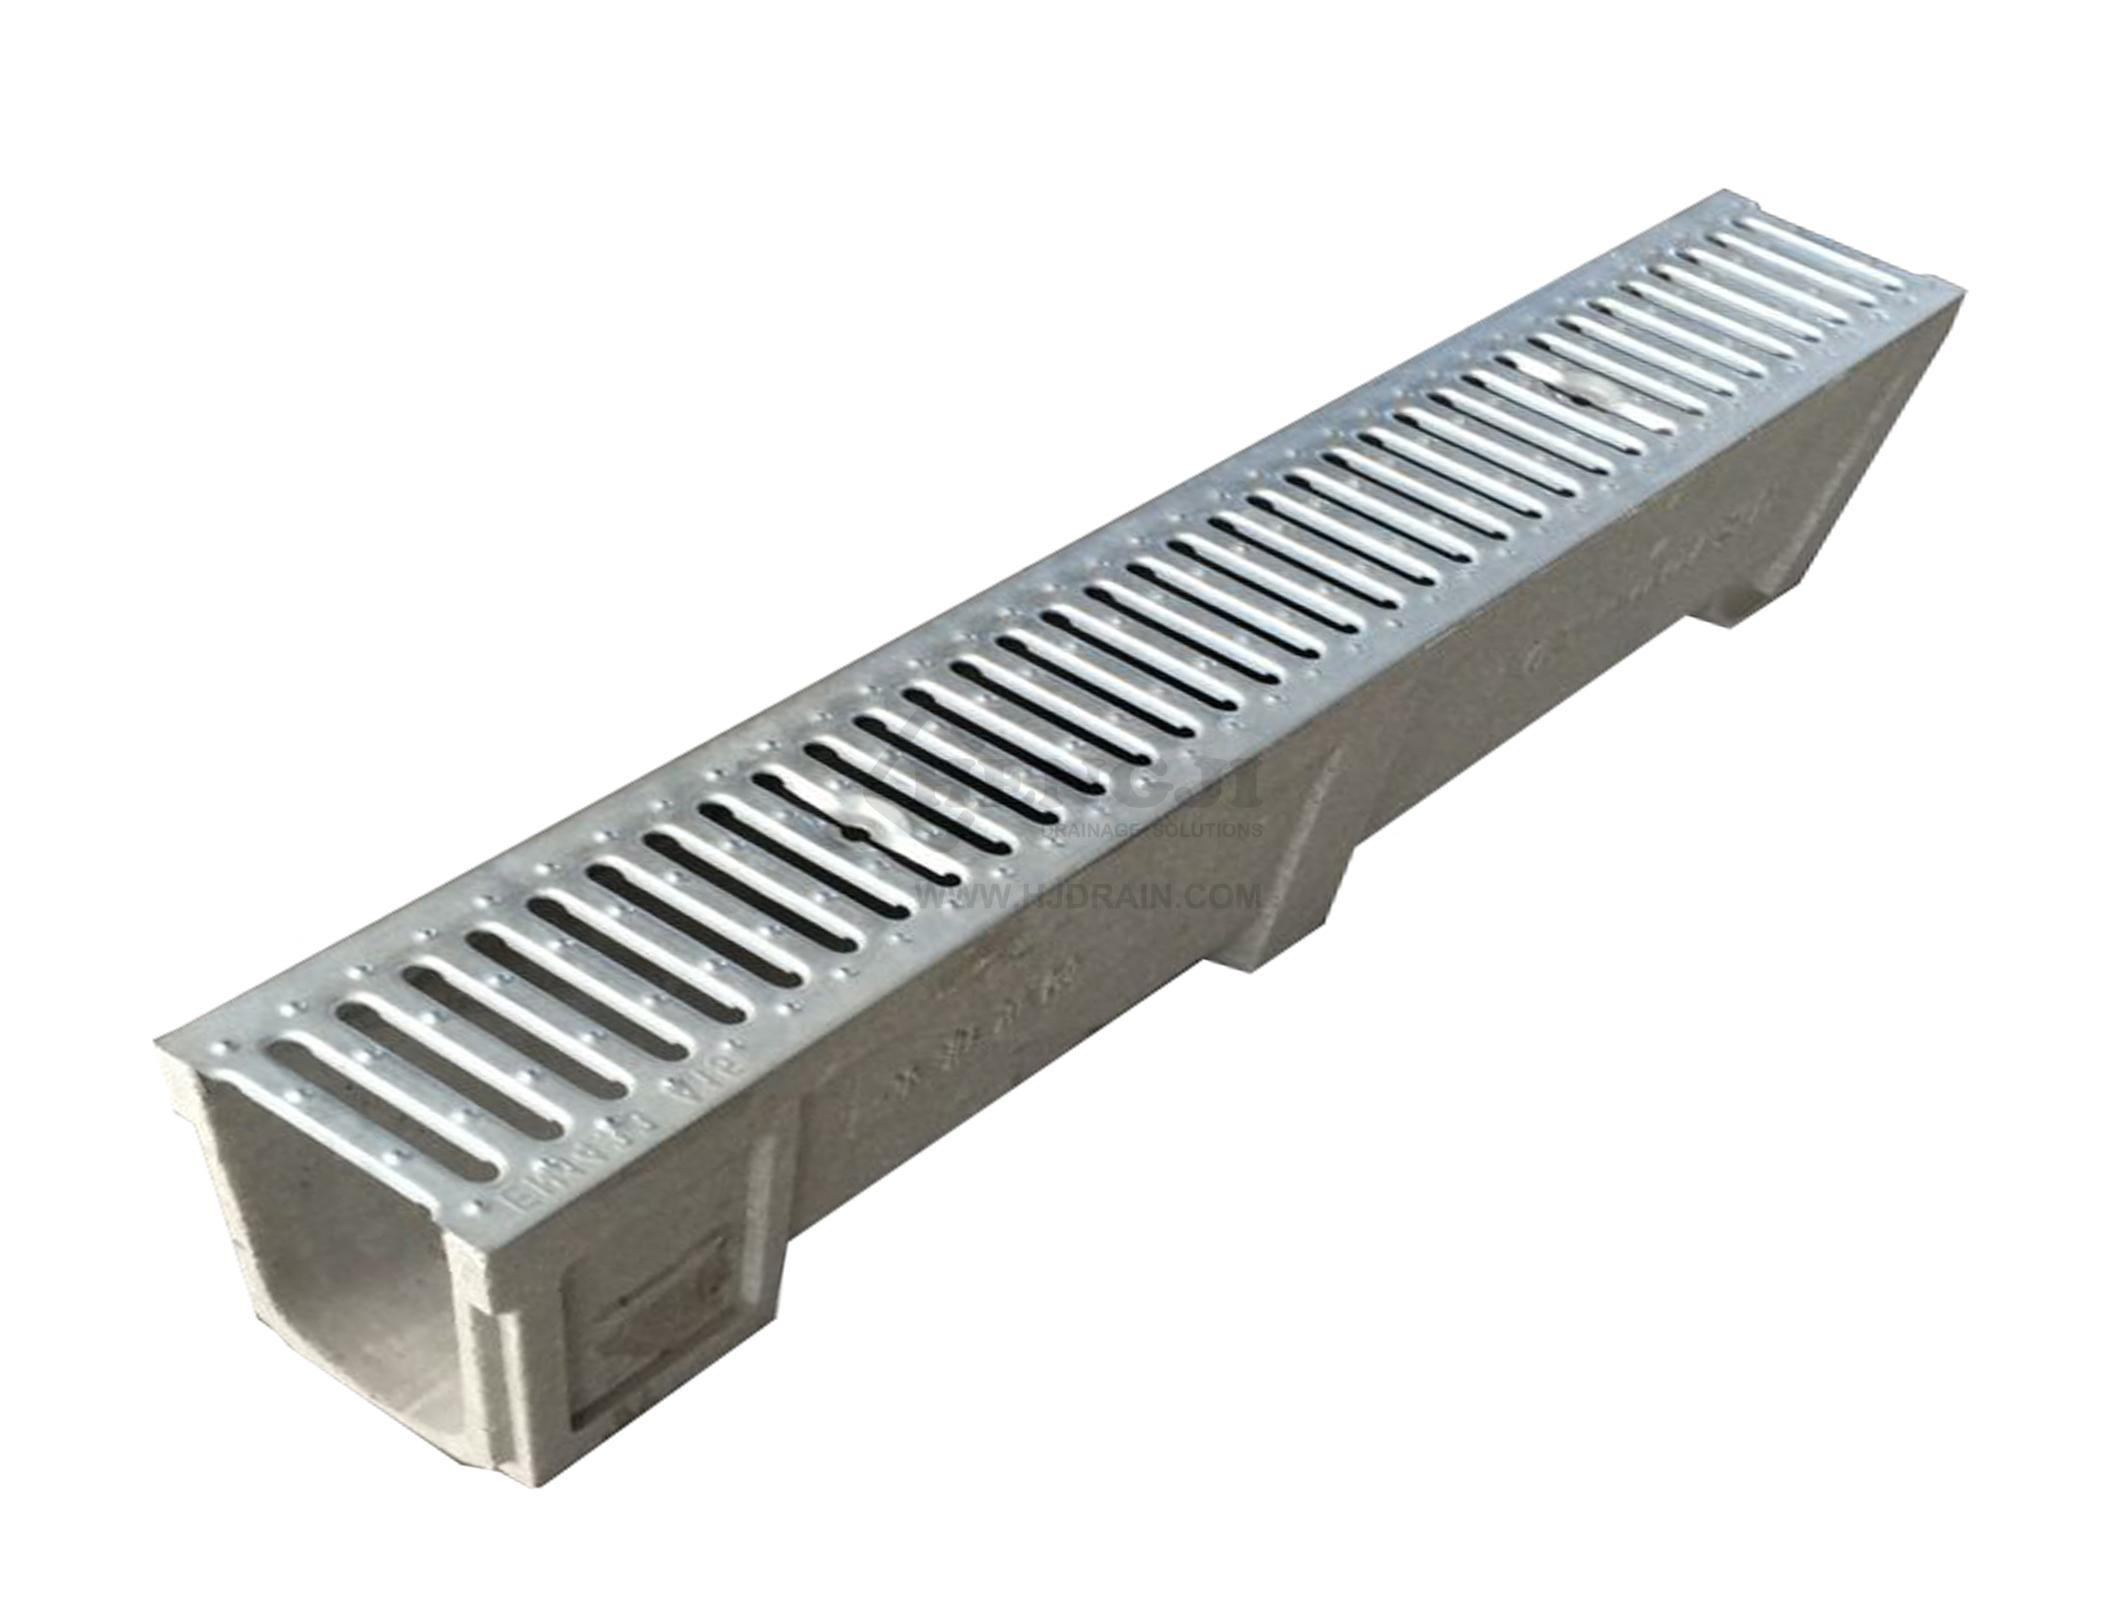 Trench drain ne100 z04 with stainless steel grate for Residential trench drain systems